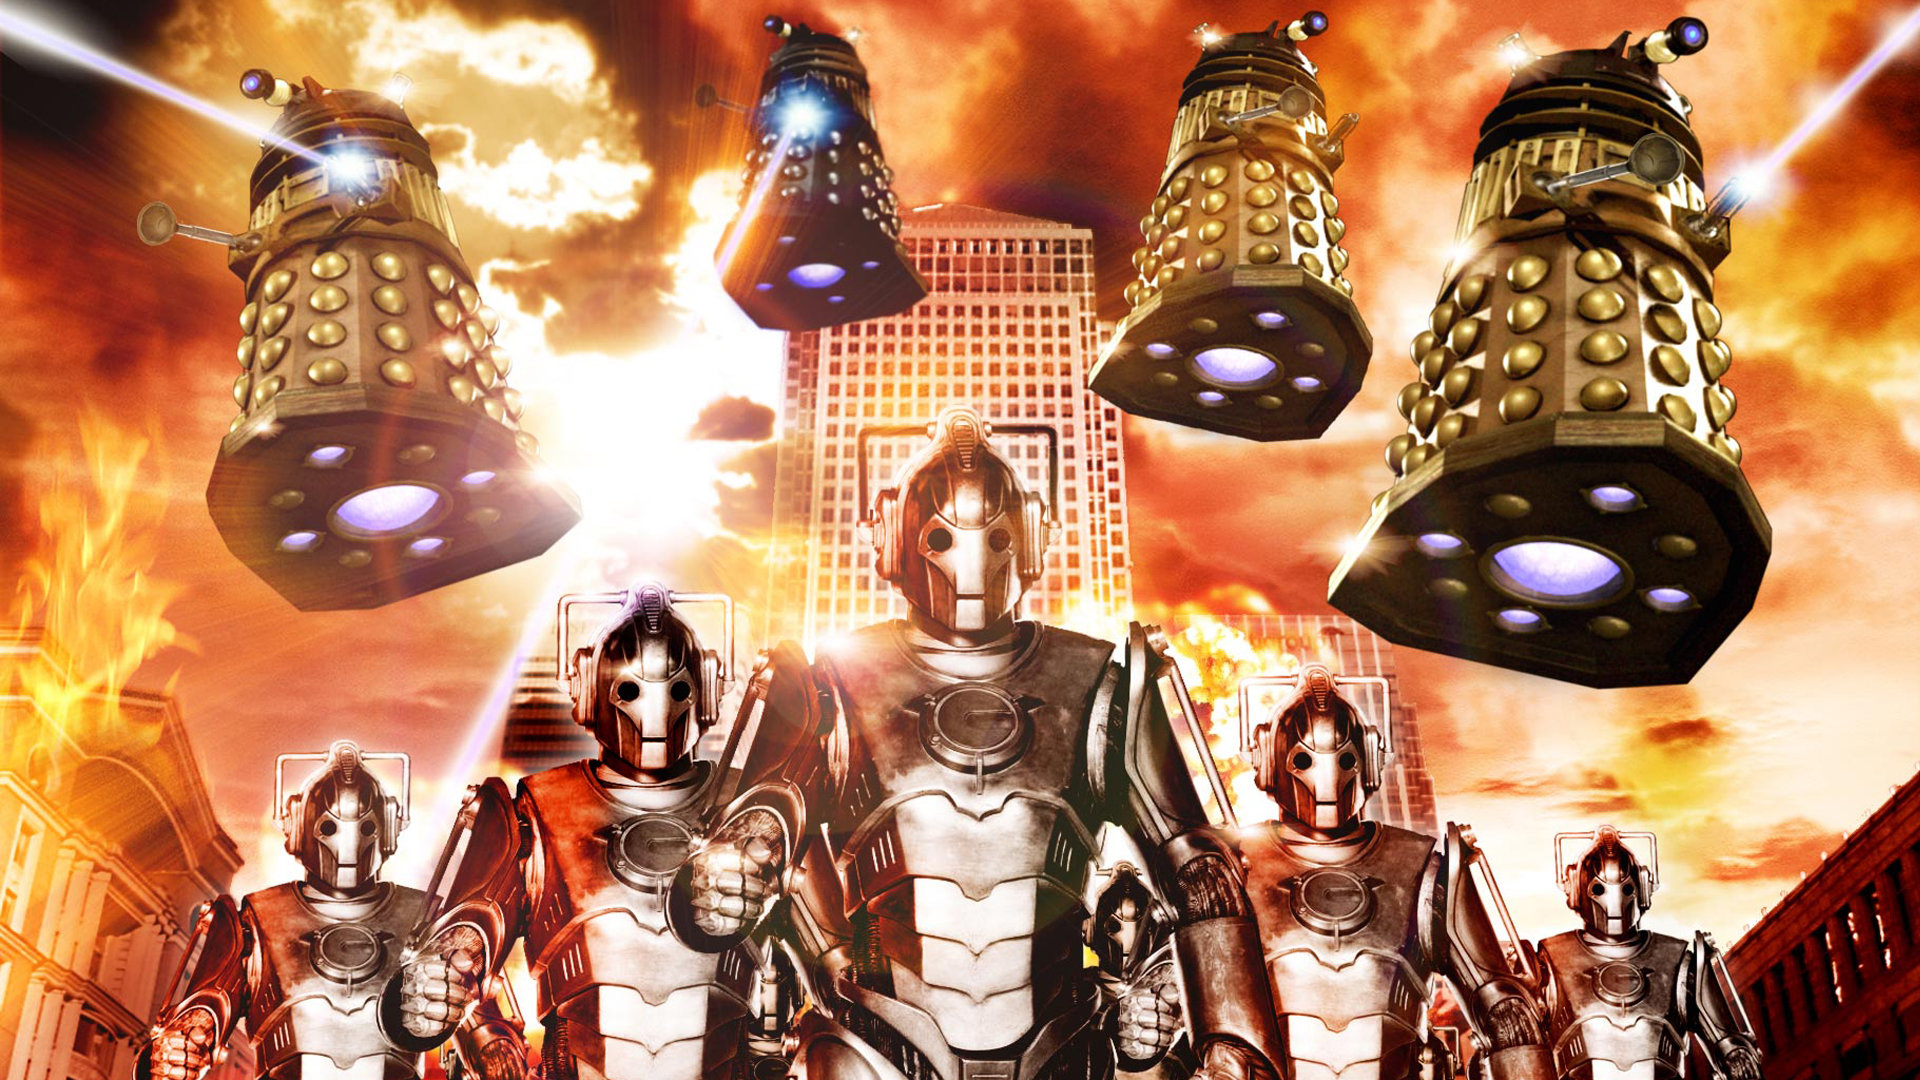 Best Dalek wallpaper ID:95513 for High Resolution hd 1920x1080 computer